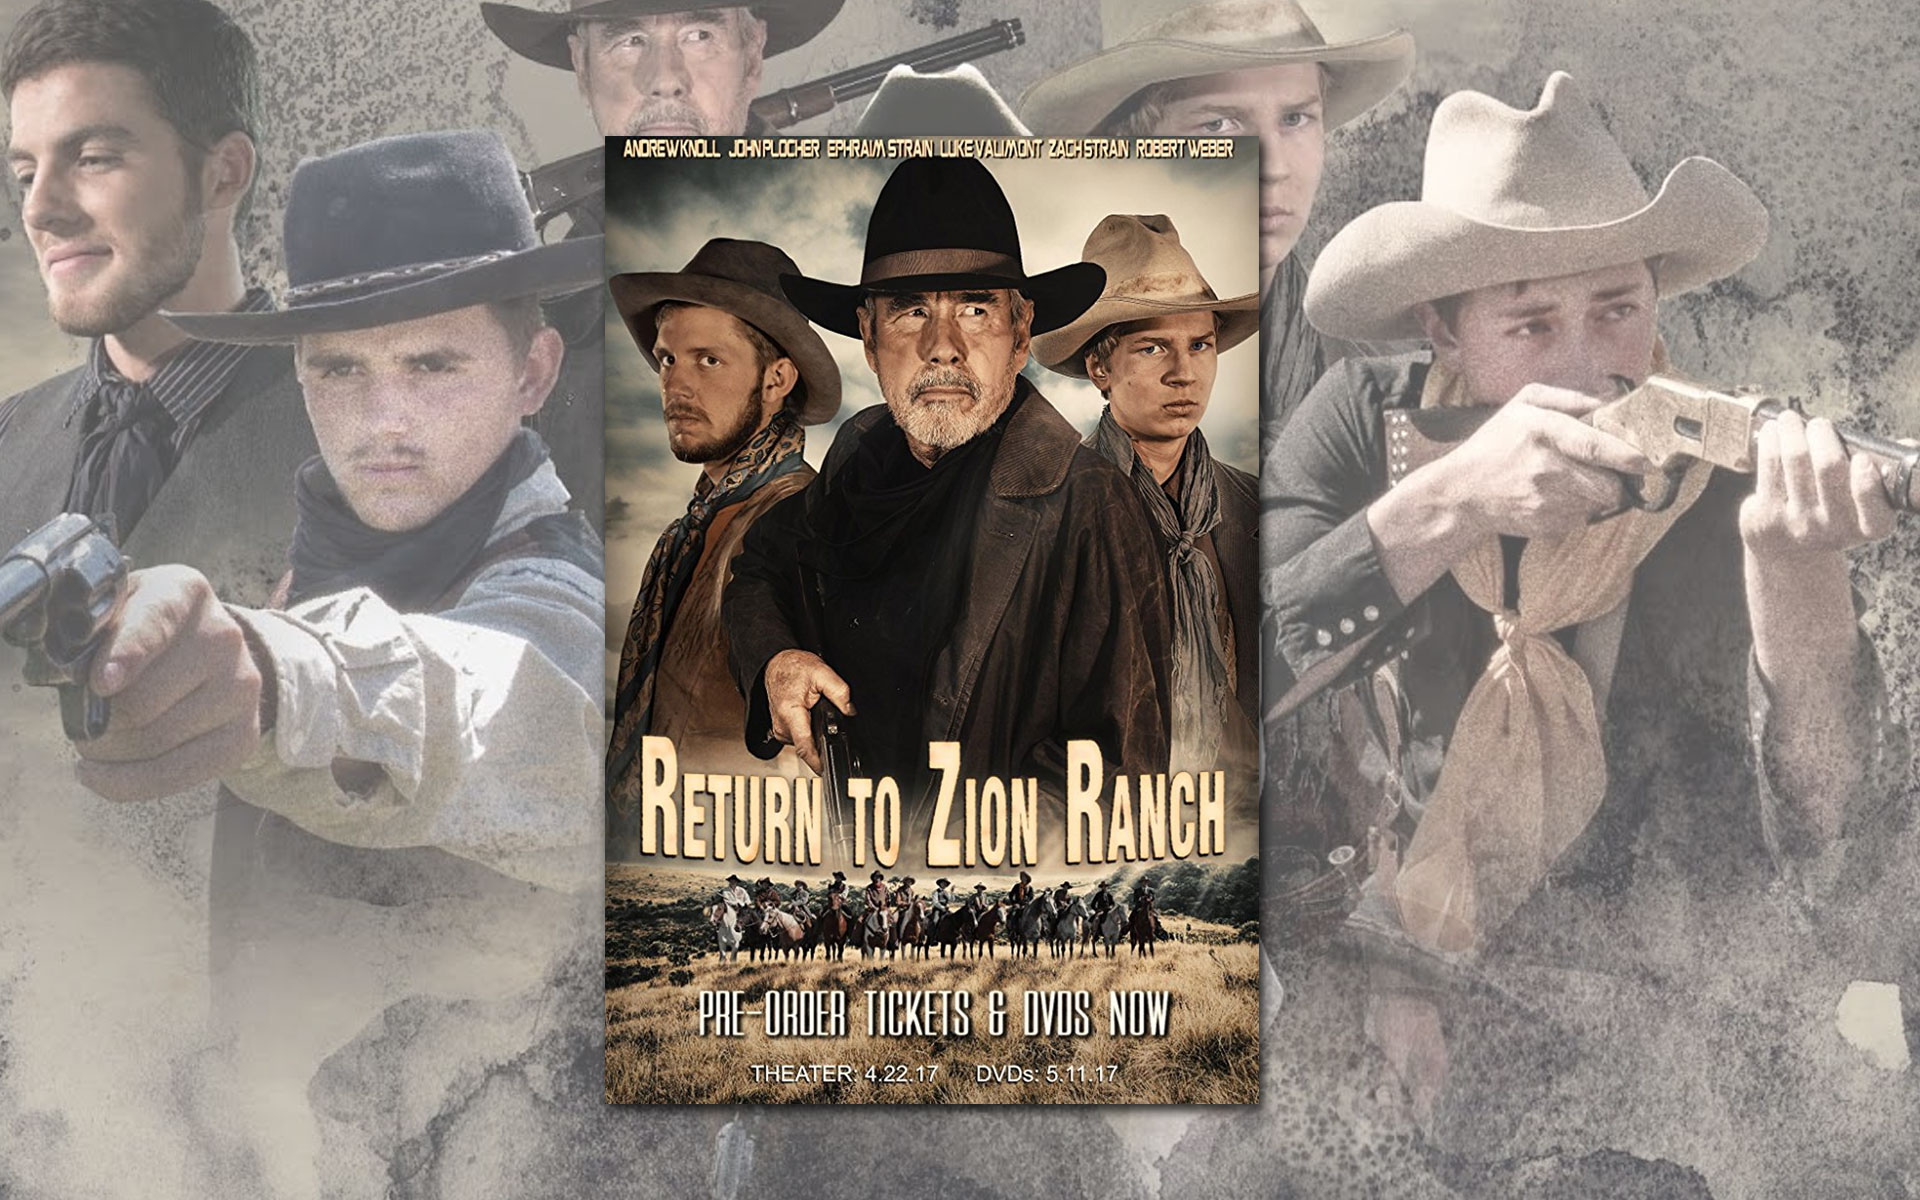 Return to Zion Ranch DVD Cover Image featuring Zion Stage Line